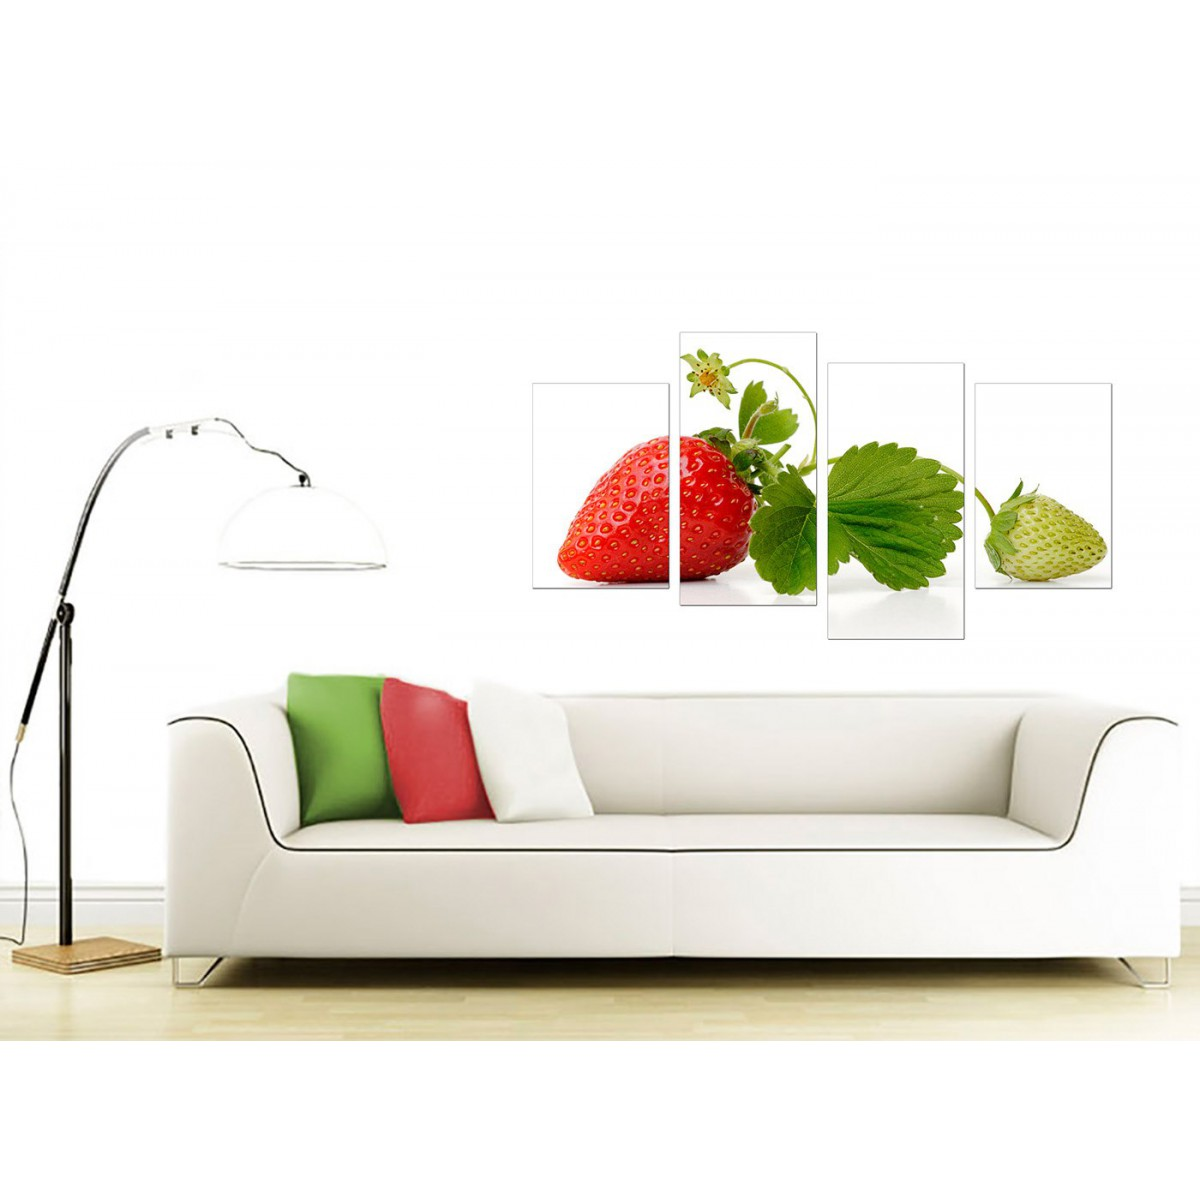 Canvas Wall Art Of Strawberry In Red For Your Kitchen